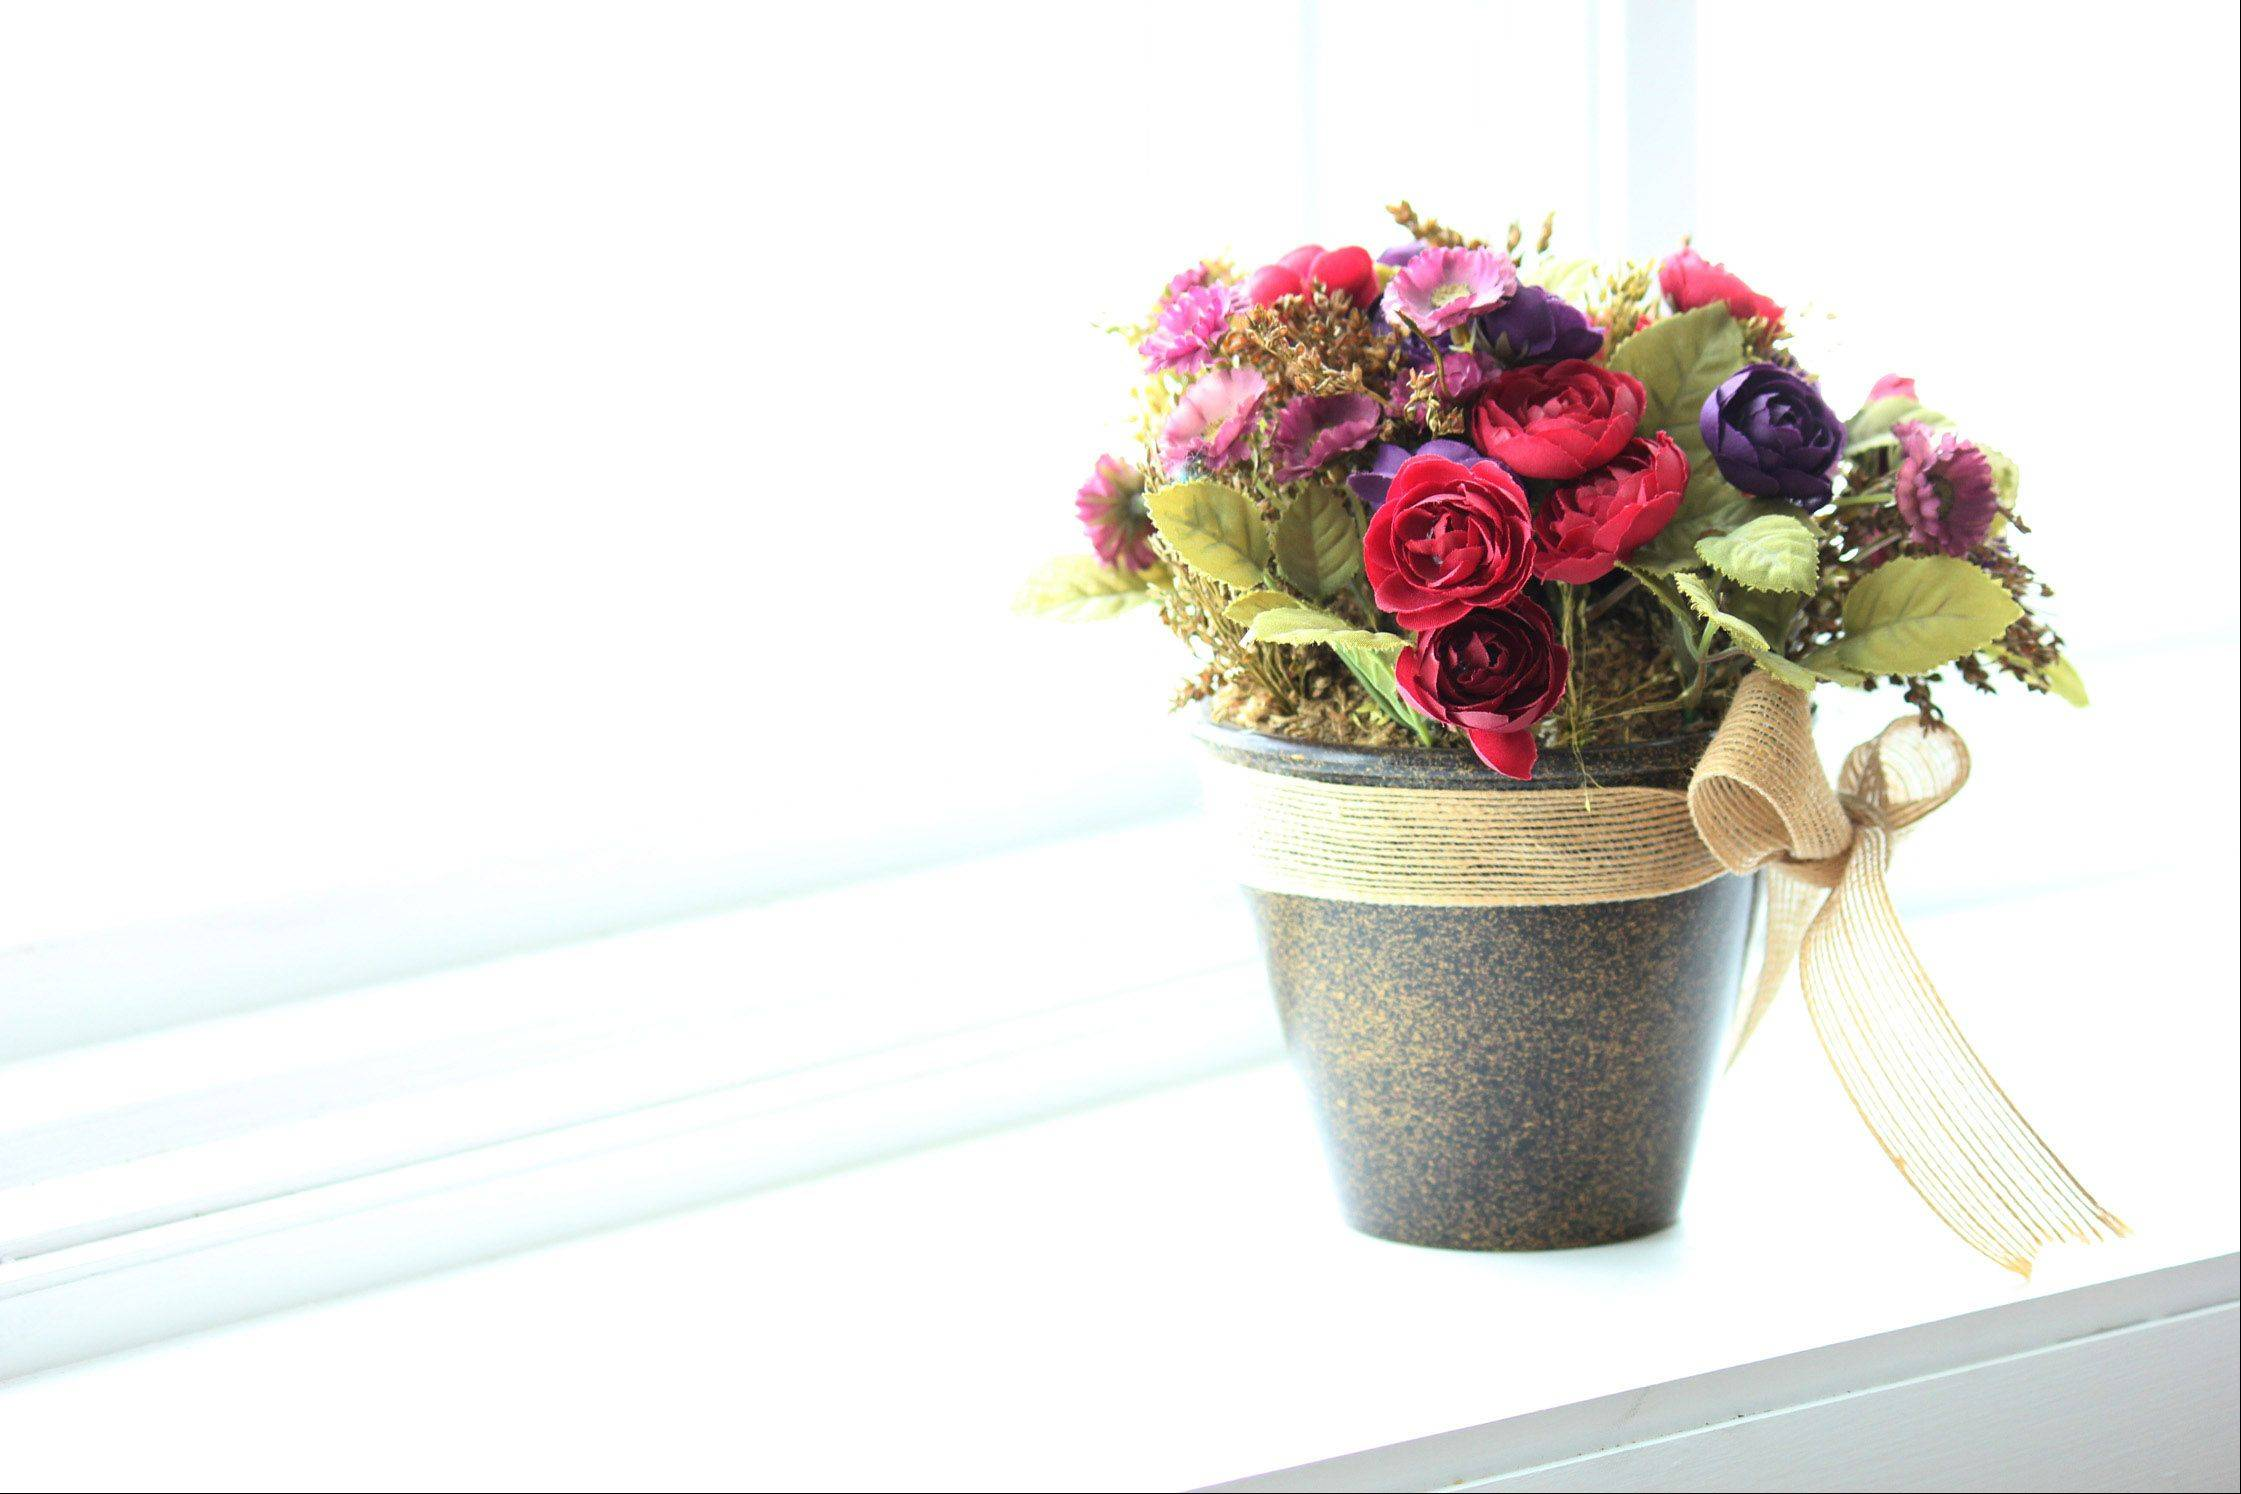 Artificial flowers on the window sill in Wildwood on February 23rd.